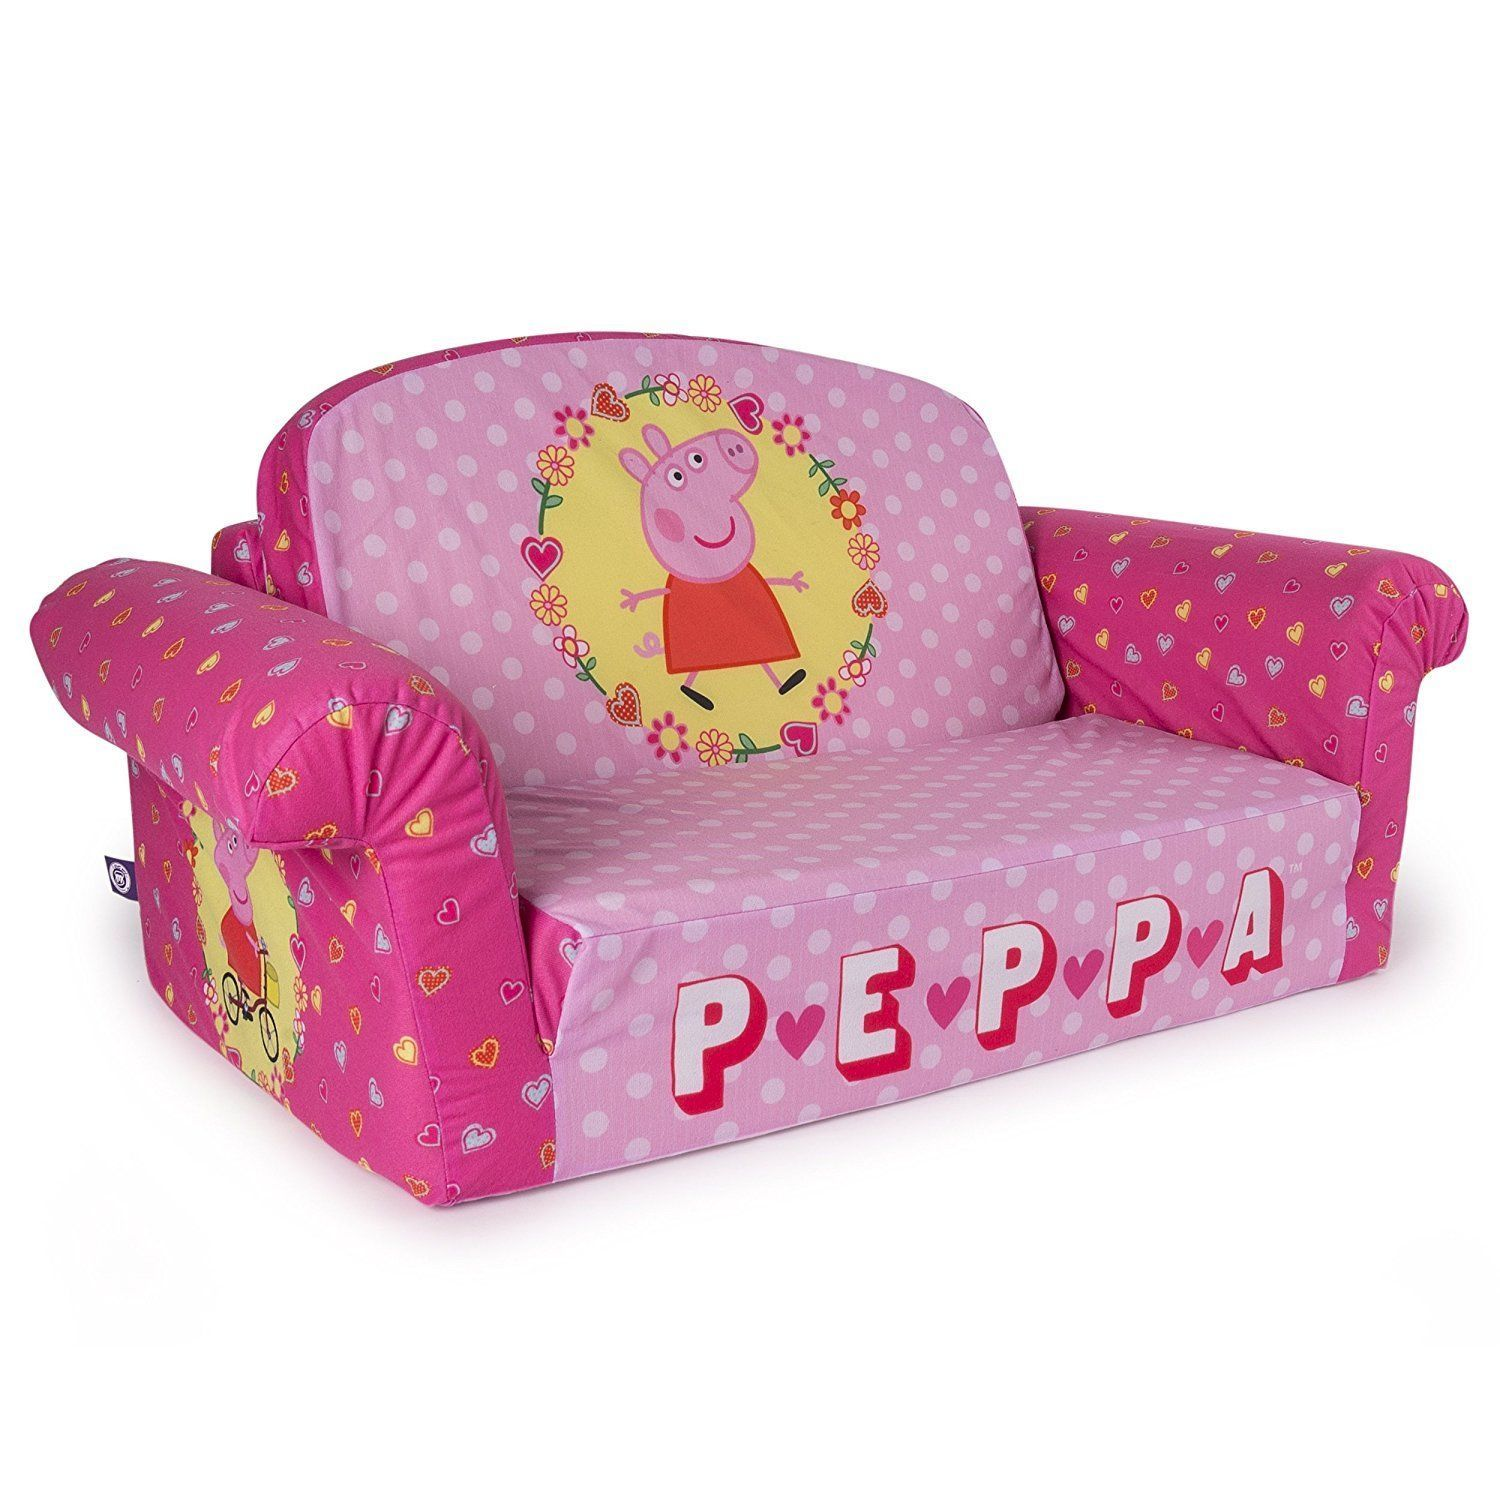 Pink Peppa Pig Plush Kids Chair Fold Out Padded Sofa Bed Lounge .